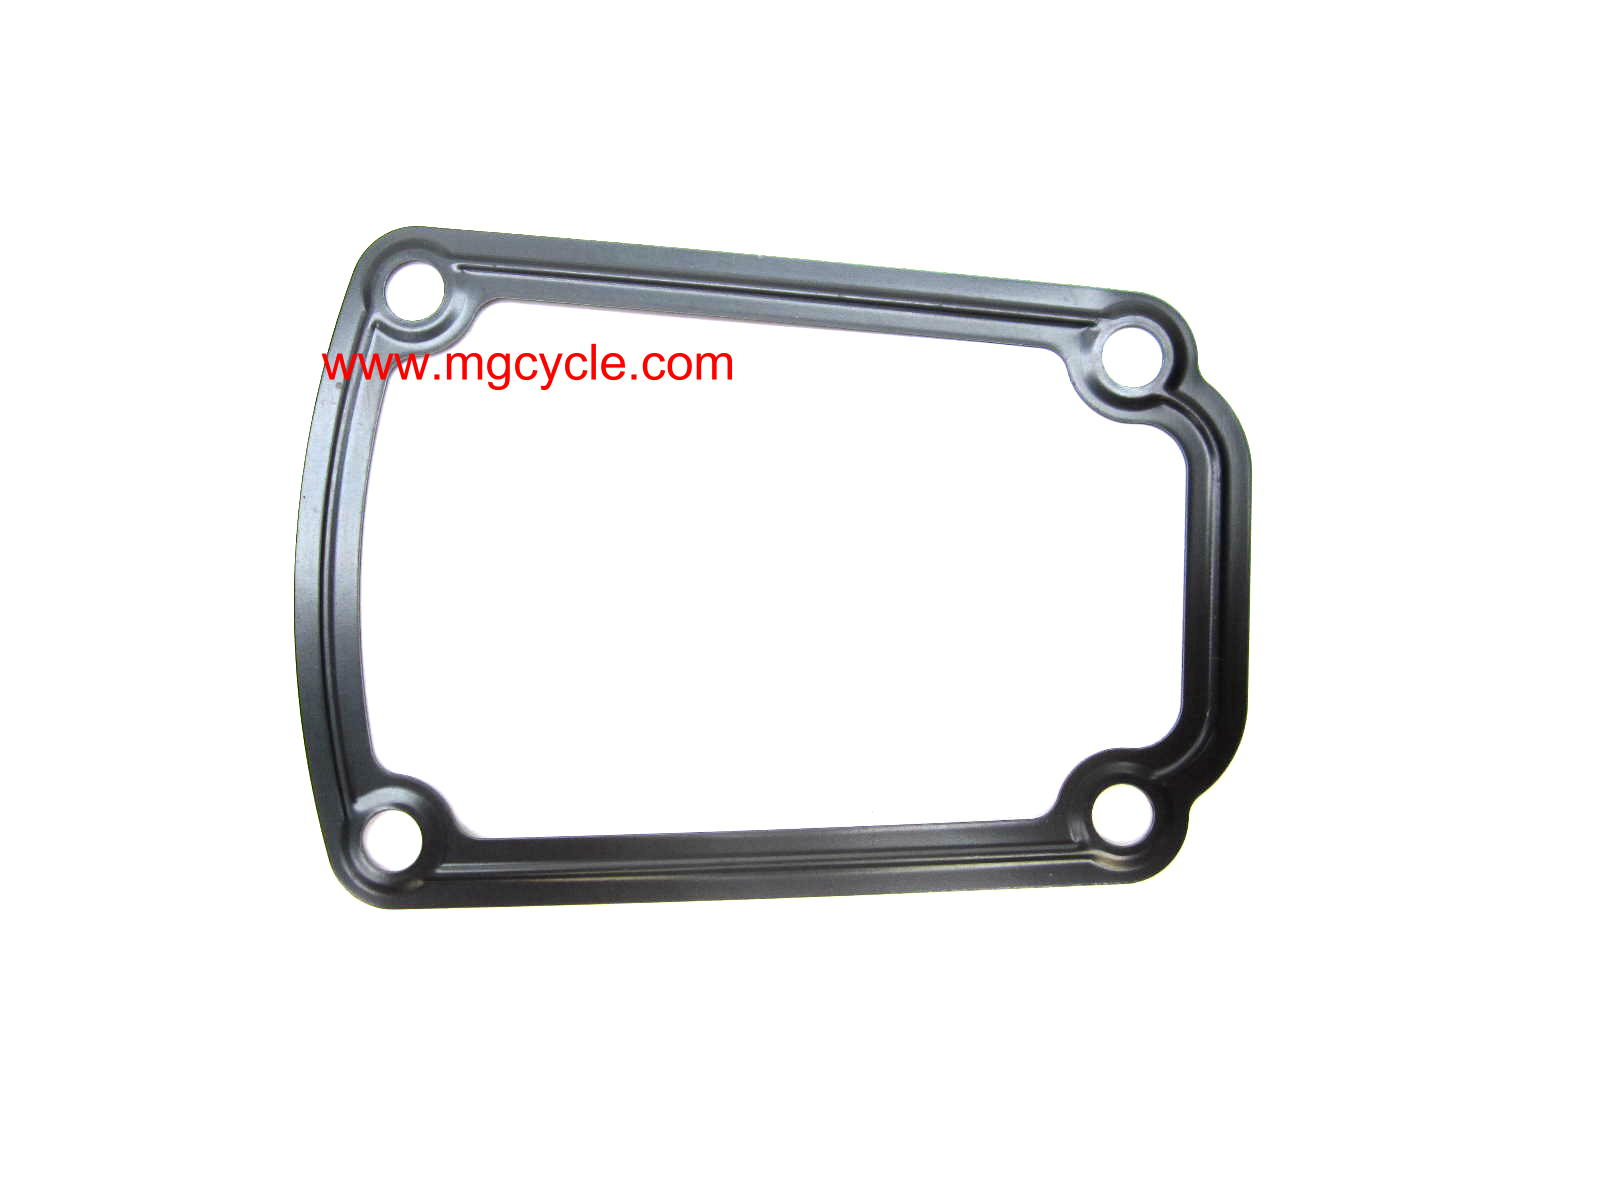 OEM Ducati metal valve cover gasket for 2 valve engines